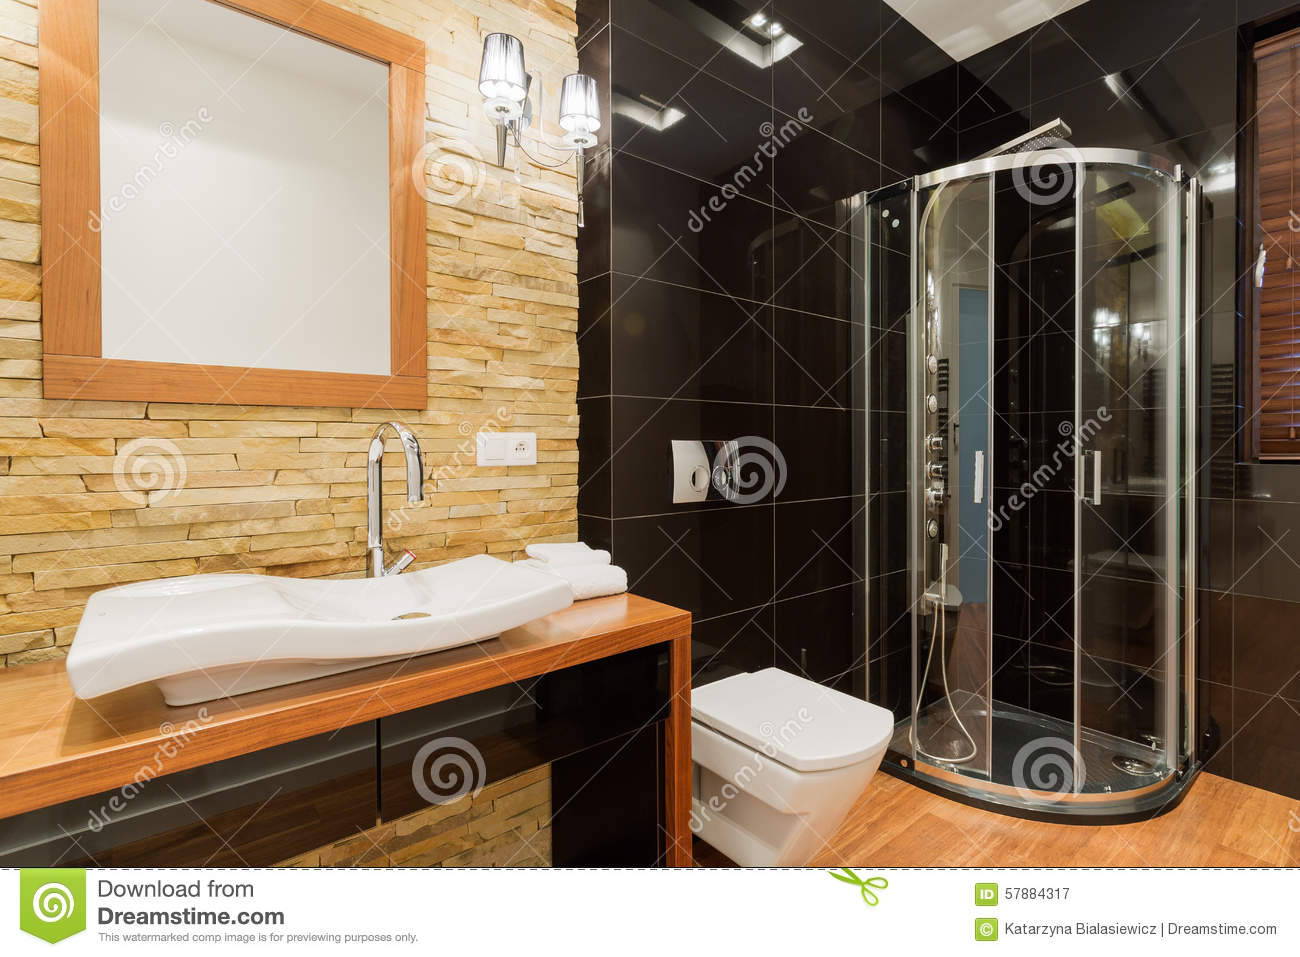 Extravagant Decor Of Bathroom Stock Photo Image 57884317